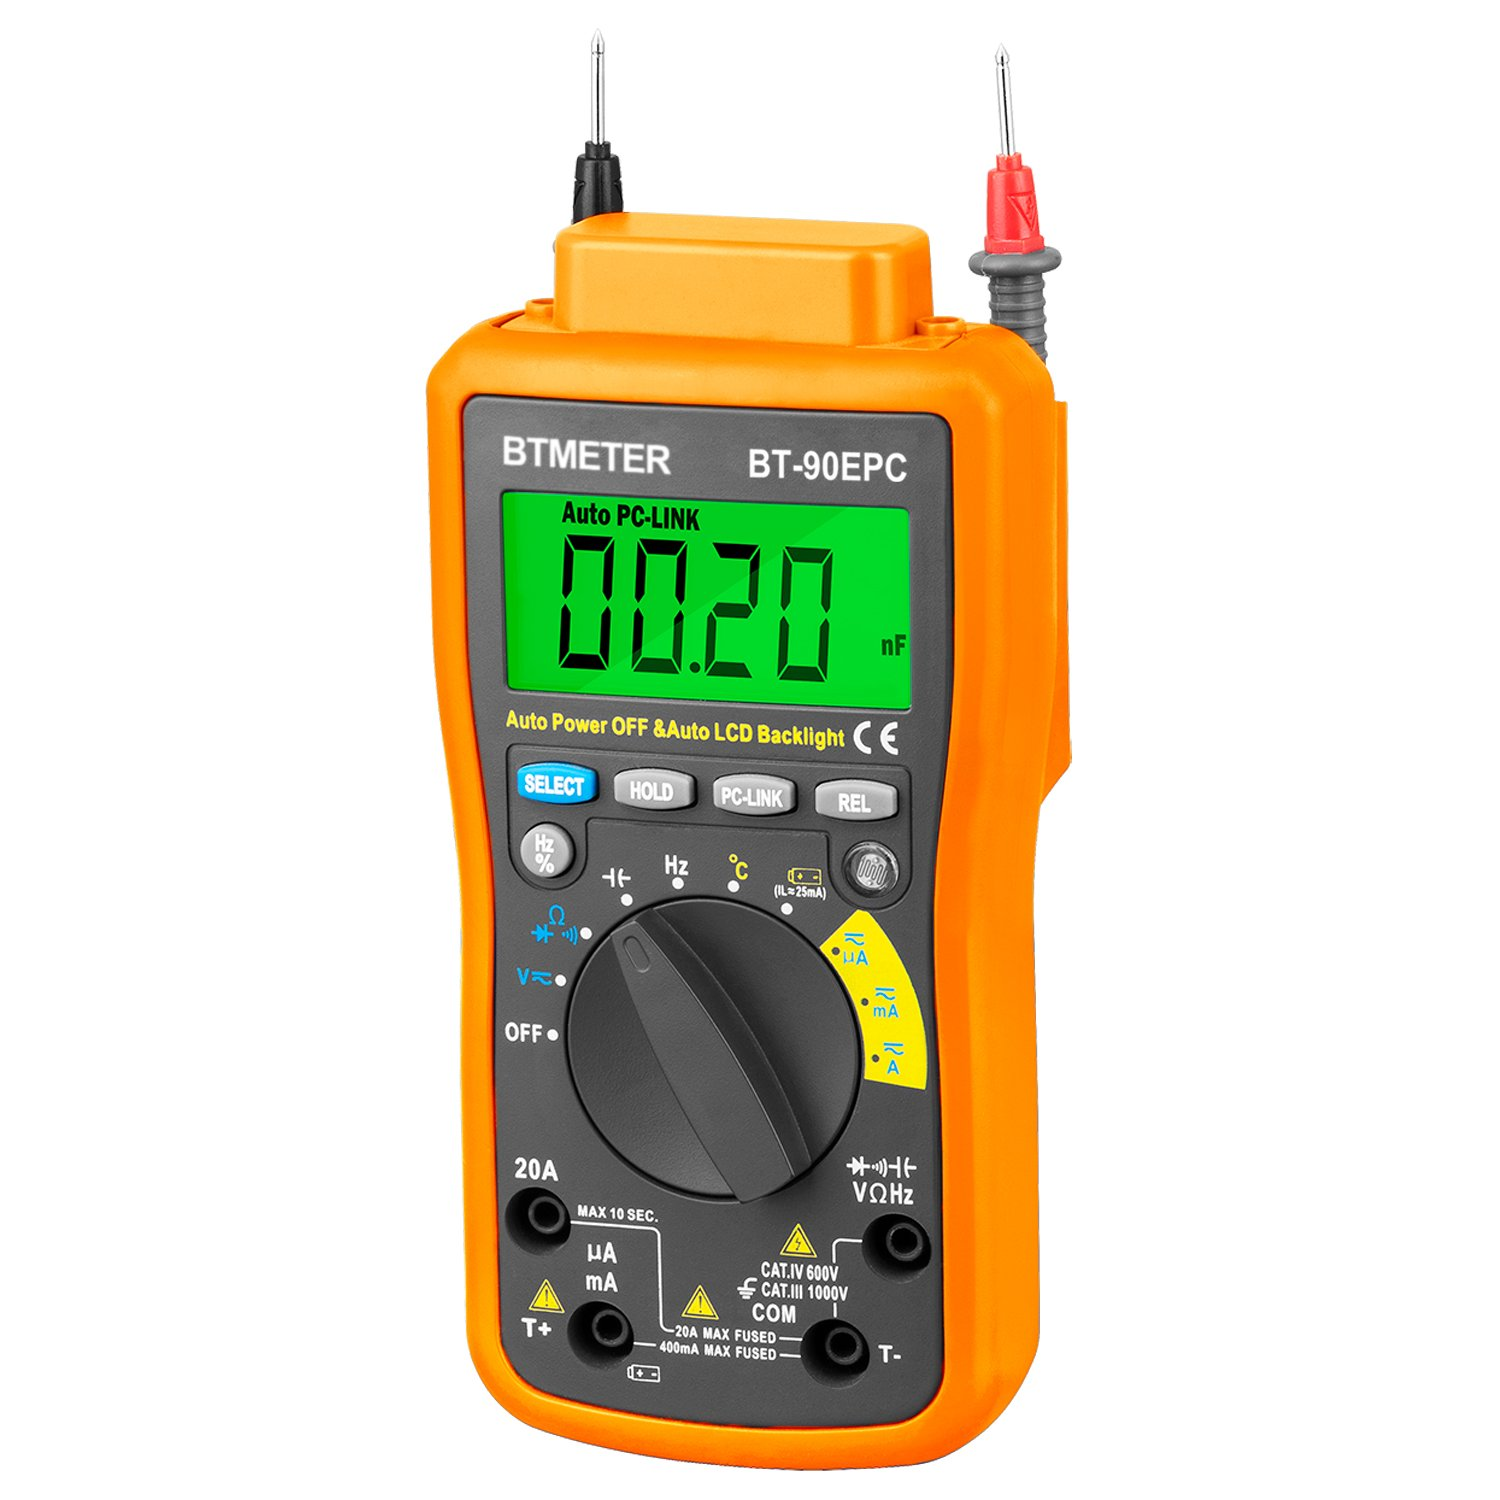 Multimeter BT-90EPC Auto Range Avometer DMM 4000 Counts With USB PC-Link, Auto Backlight, AC & DC Voltage, AC & DC Current, Resistance, Cap, Hz, Duty Cycle, Temperature, Battery Test